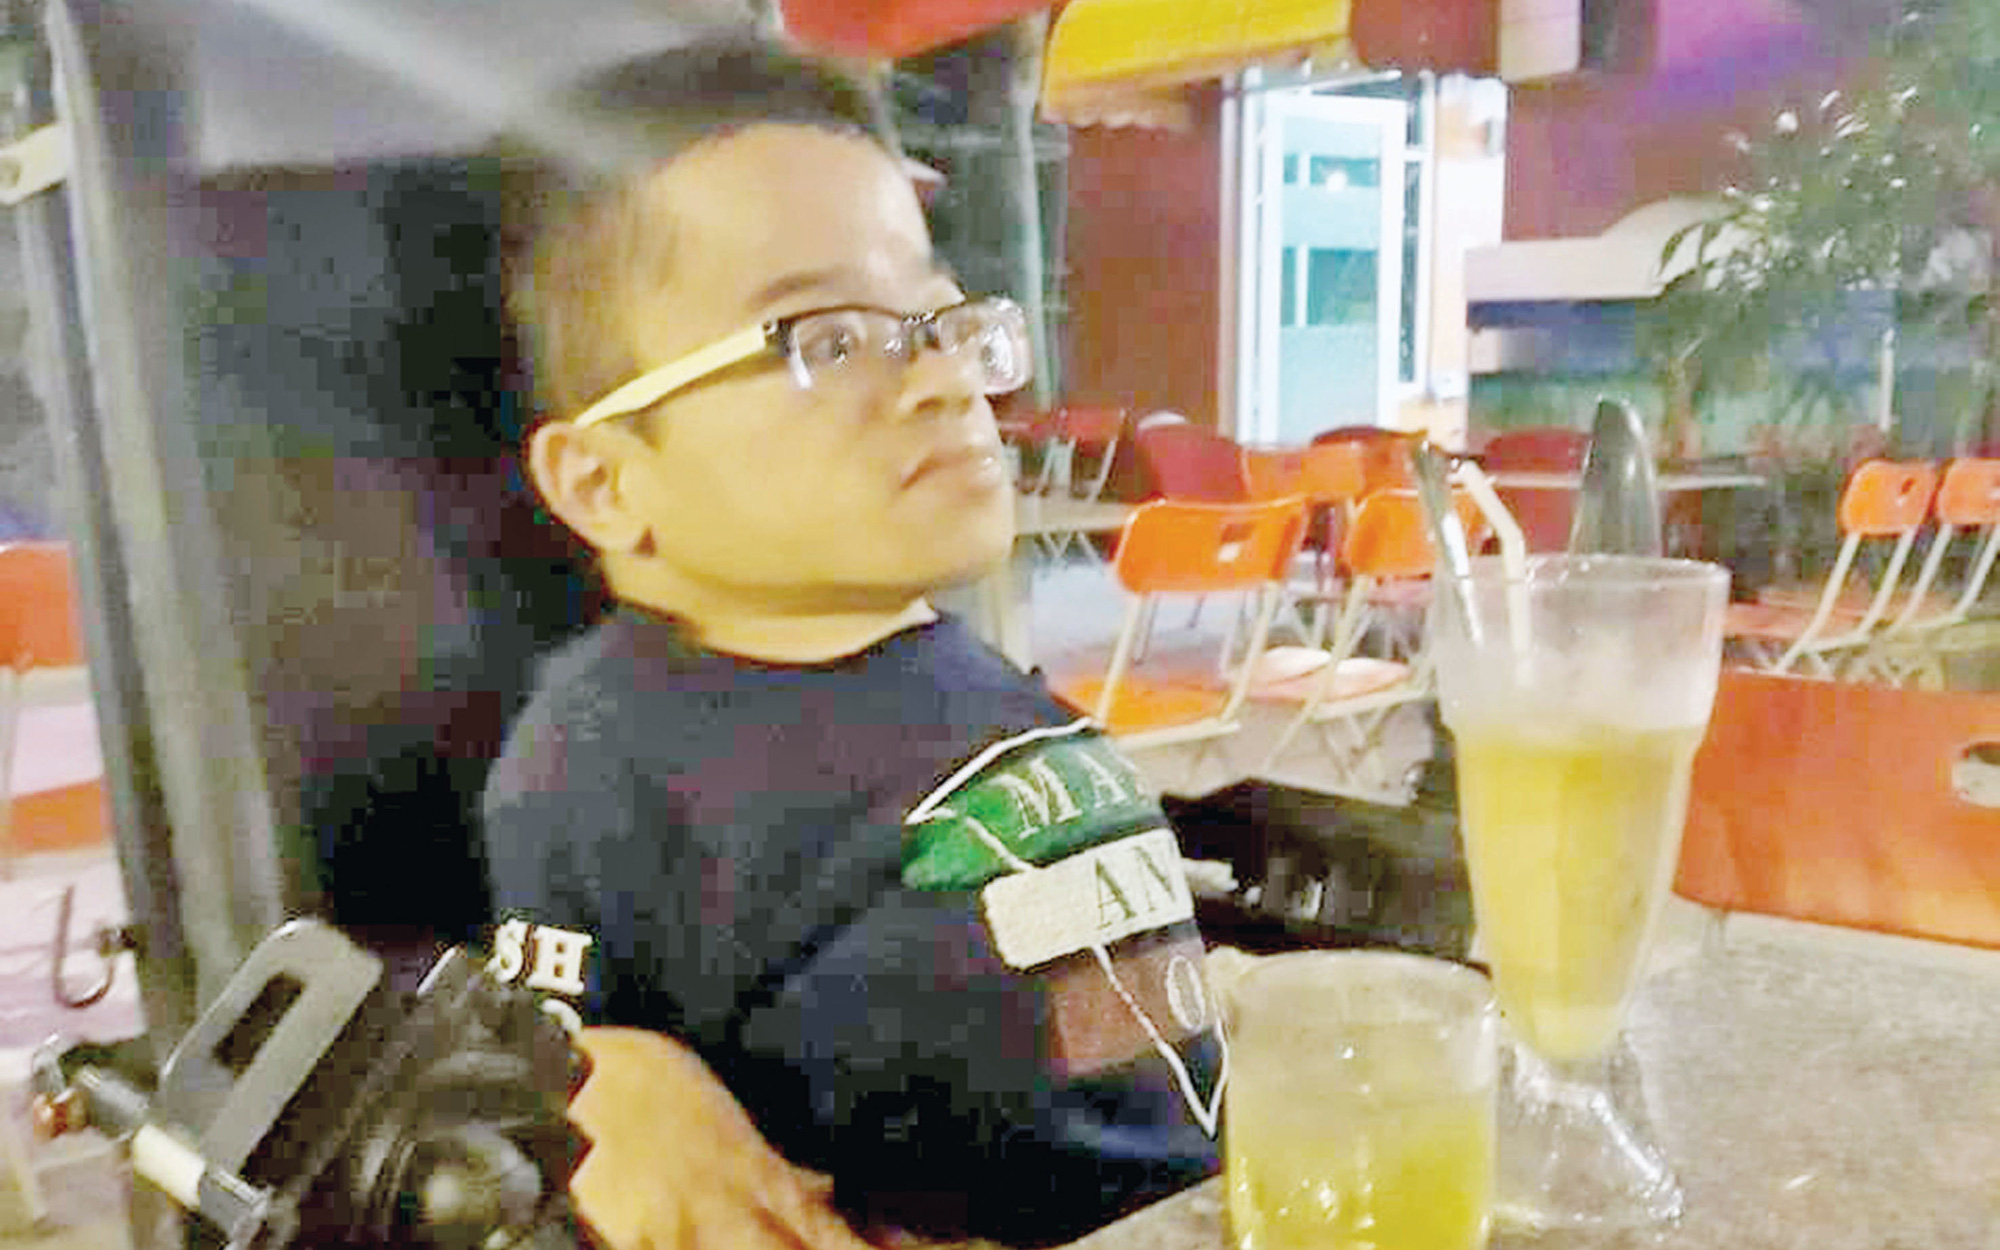 Disabled Vietnamese man speaks out against YouTube bullies